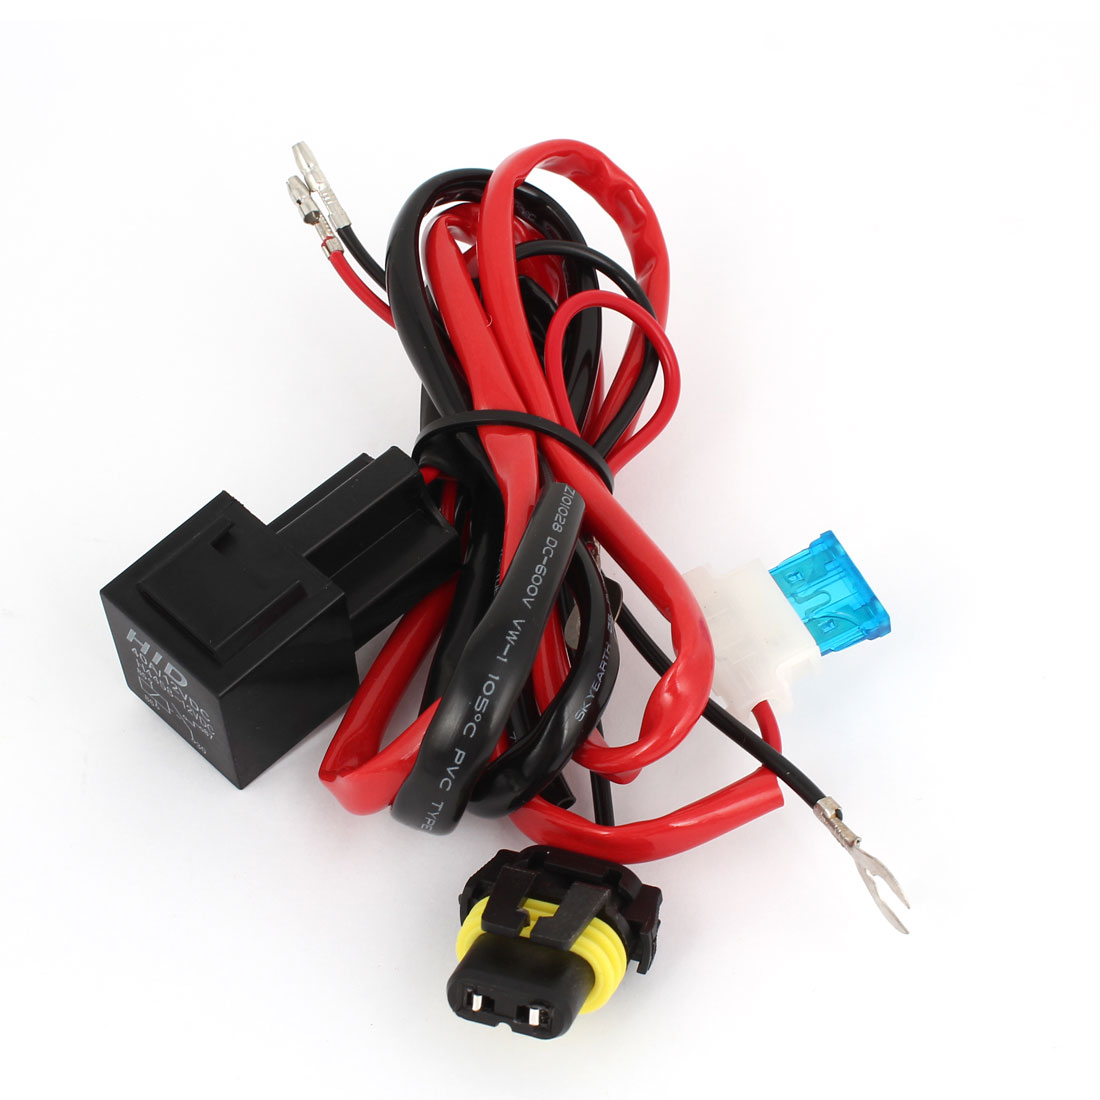 HID Xenon H4 Hi/Lo Bulbs Relay Controller Harness Cable DC12V 40A for Motorcycle